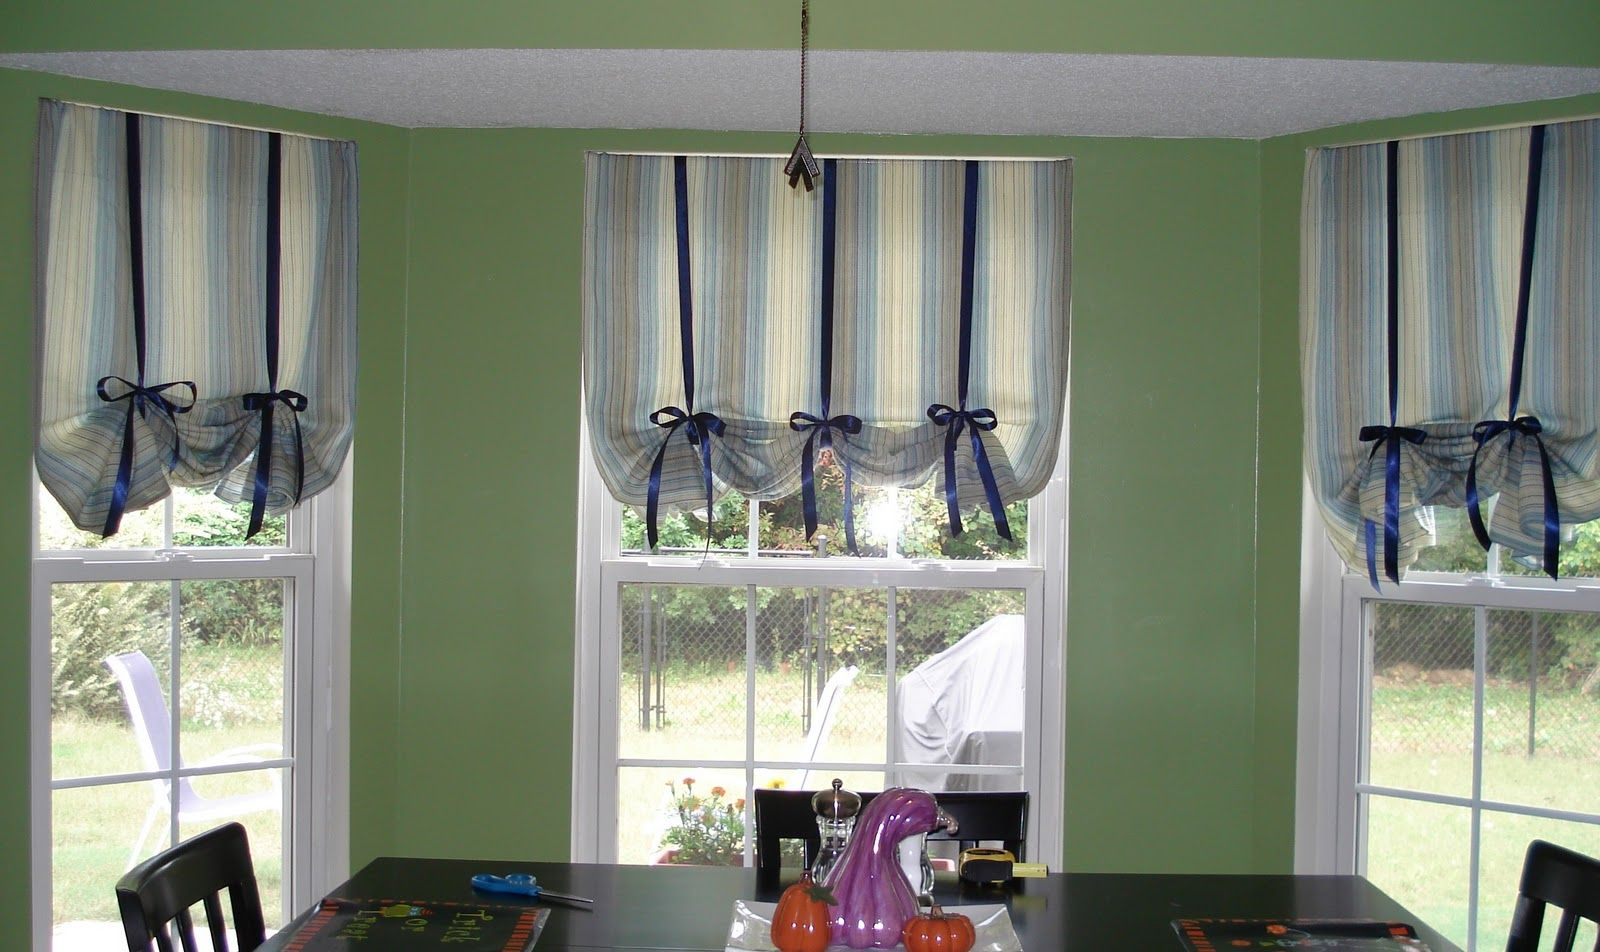 window curtain ideas kitchen window ideas images about window treatments on pinterest balloon shades curtain rods and homemade curtain rods